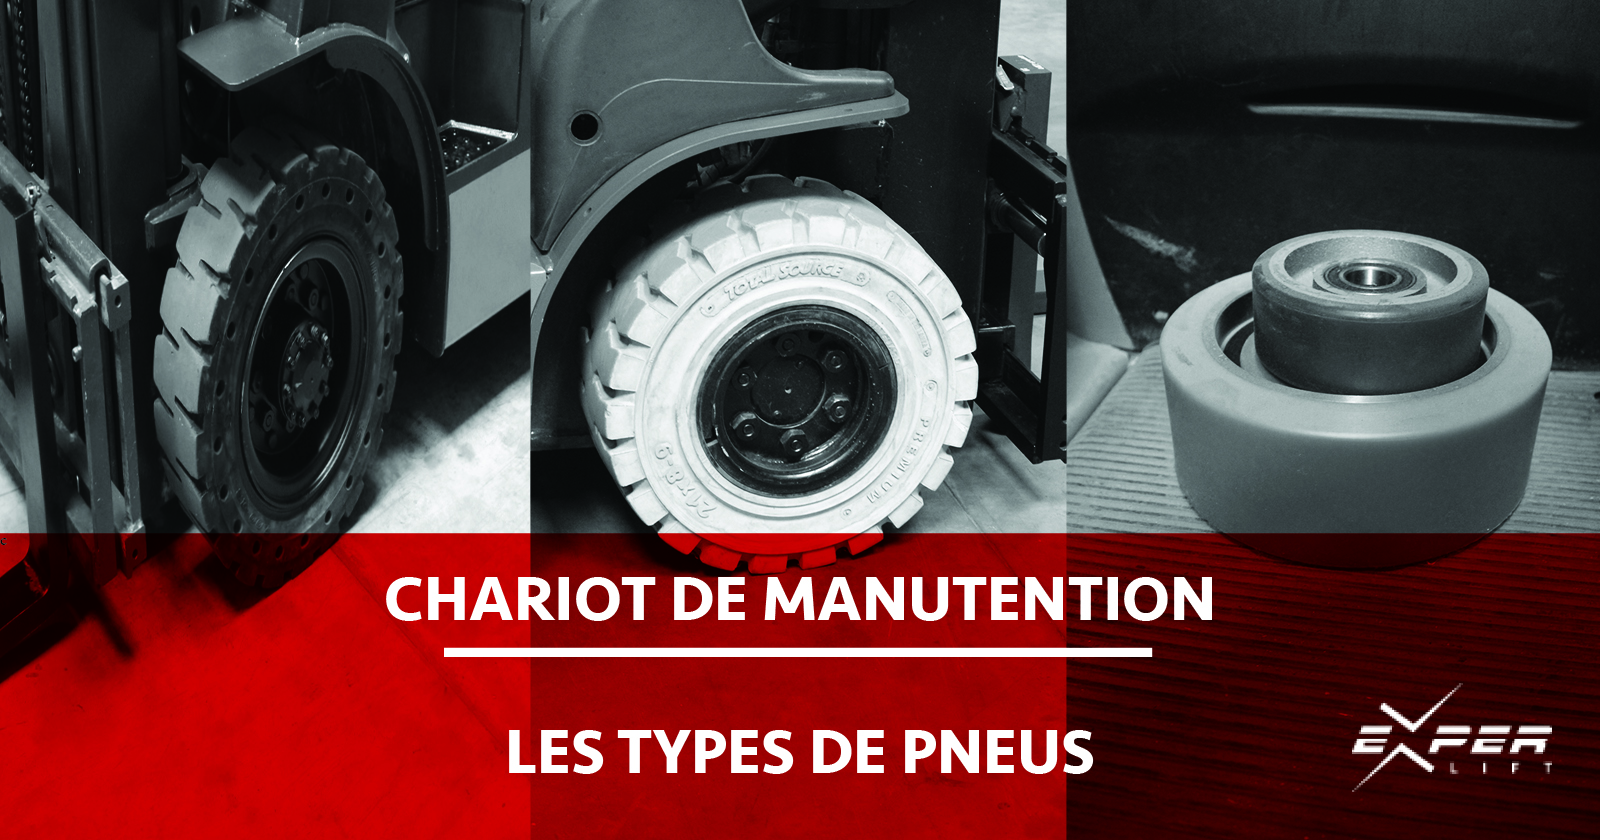 Types de pneus de chariot de manutention